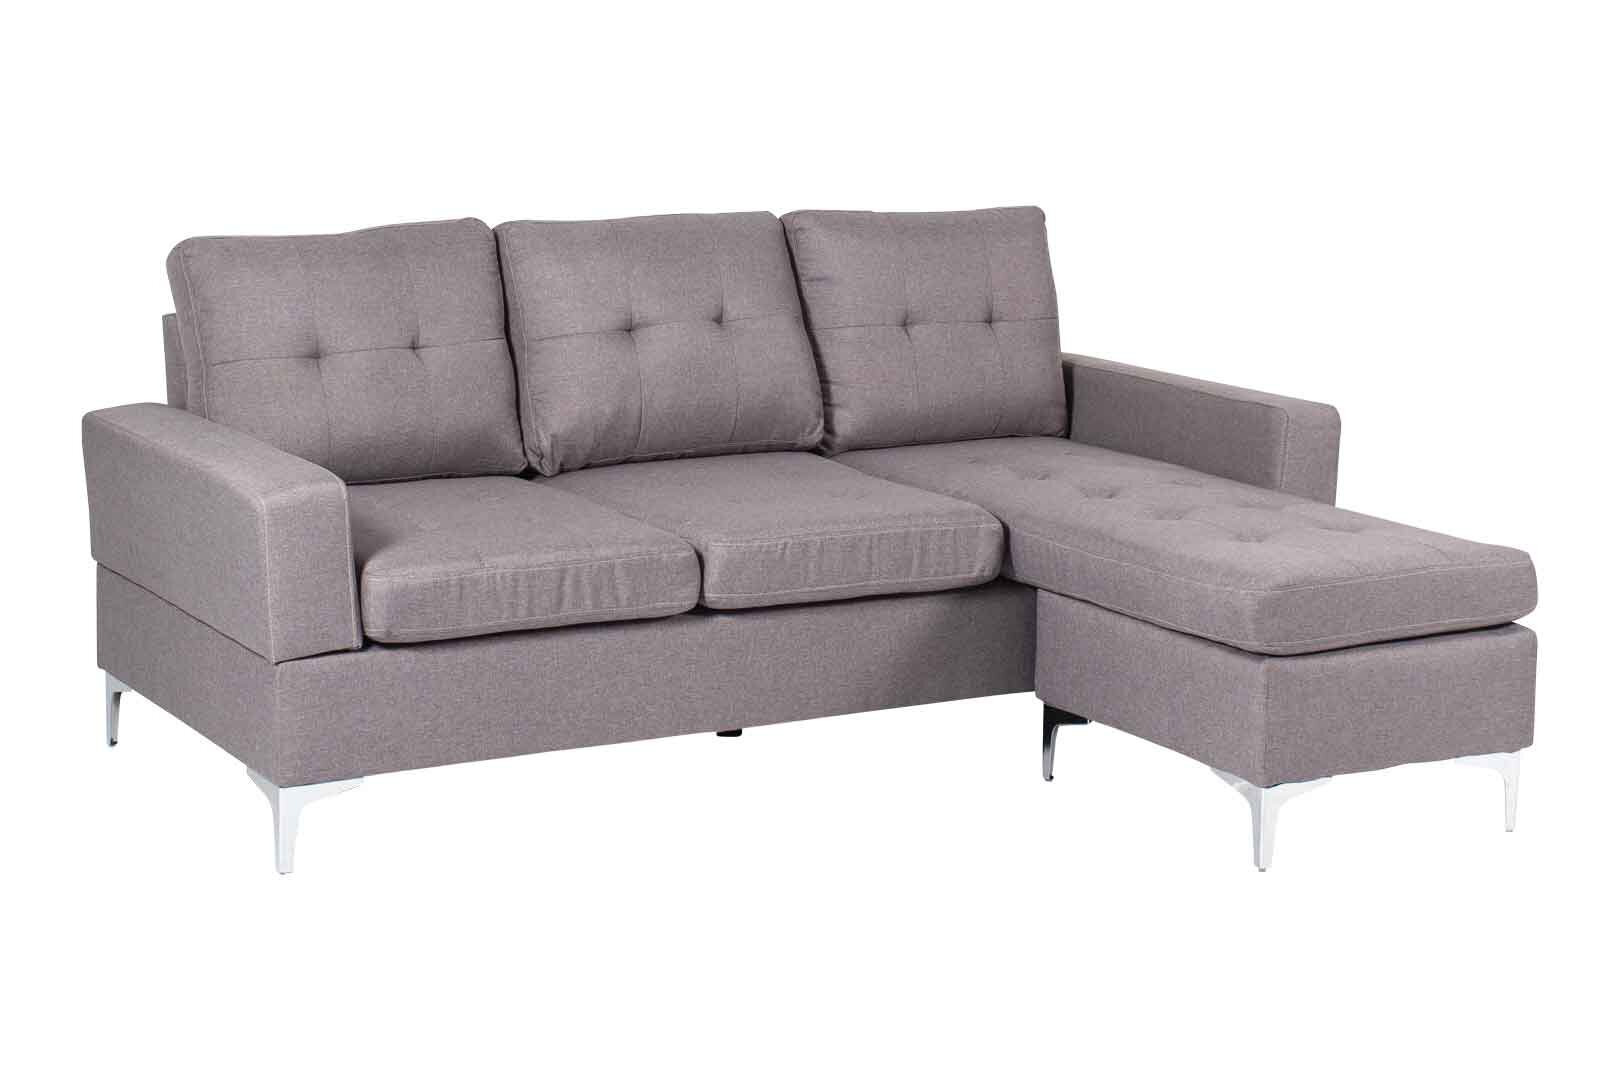 3 Seater L Shape Fabric Sofa With